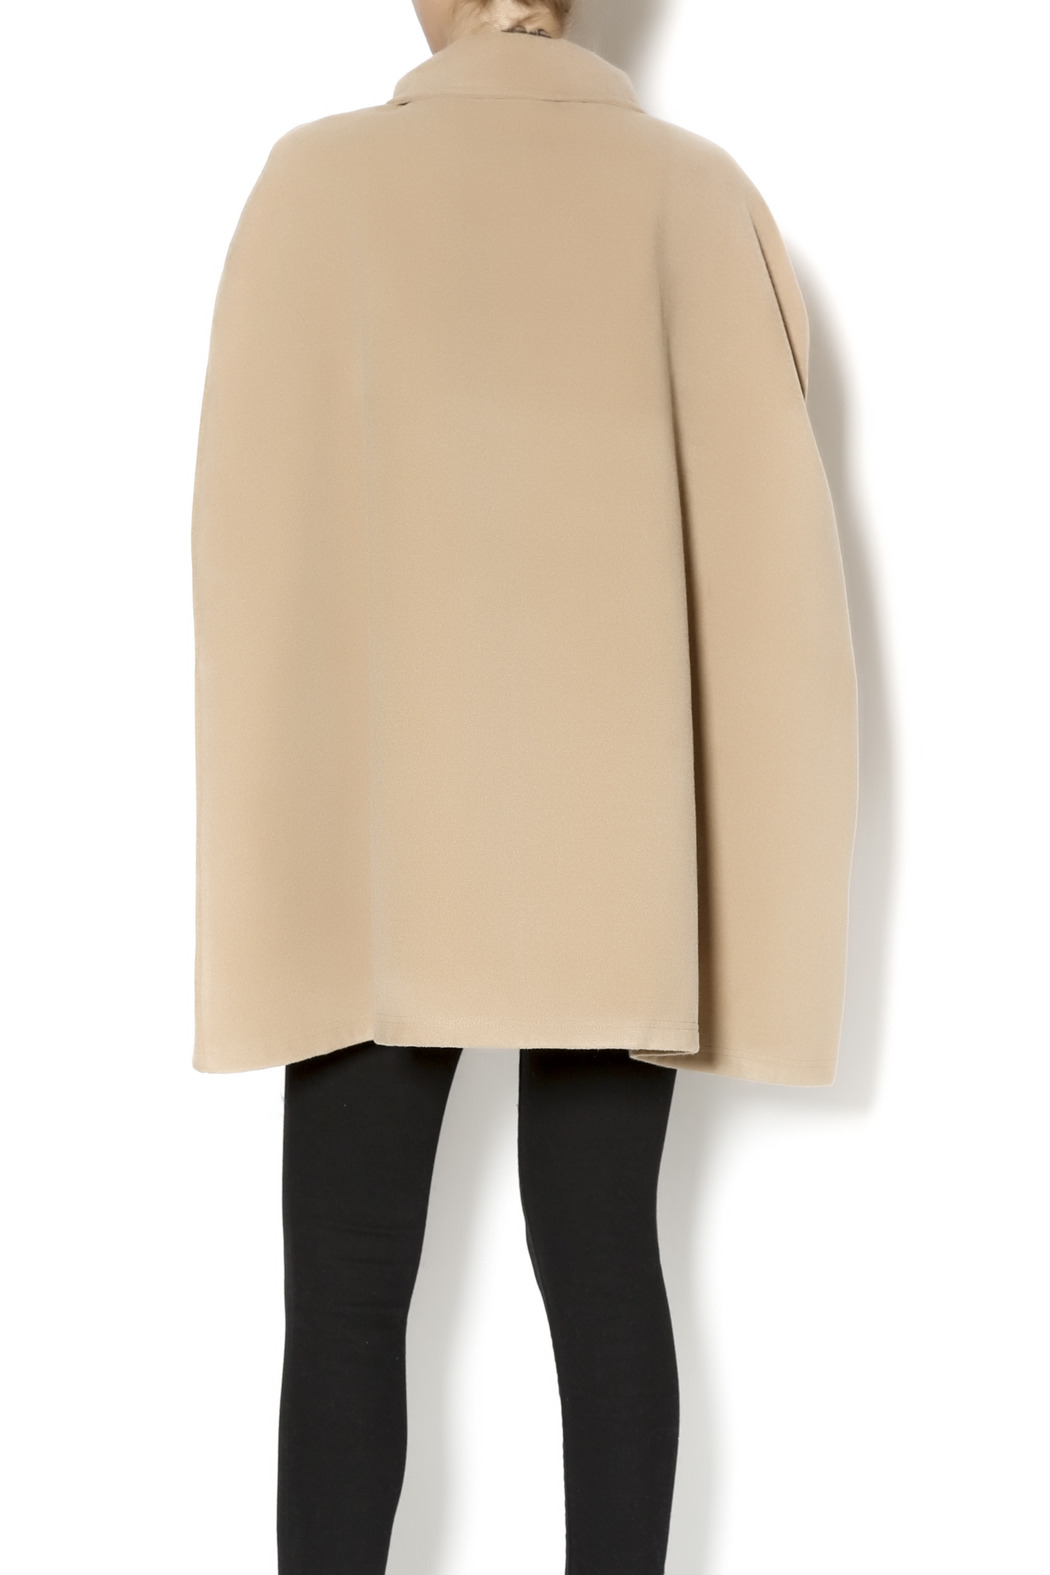 Charlie Paige Trench Coat Poncho - Back Cropped Image